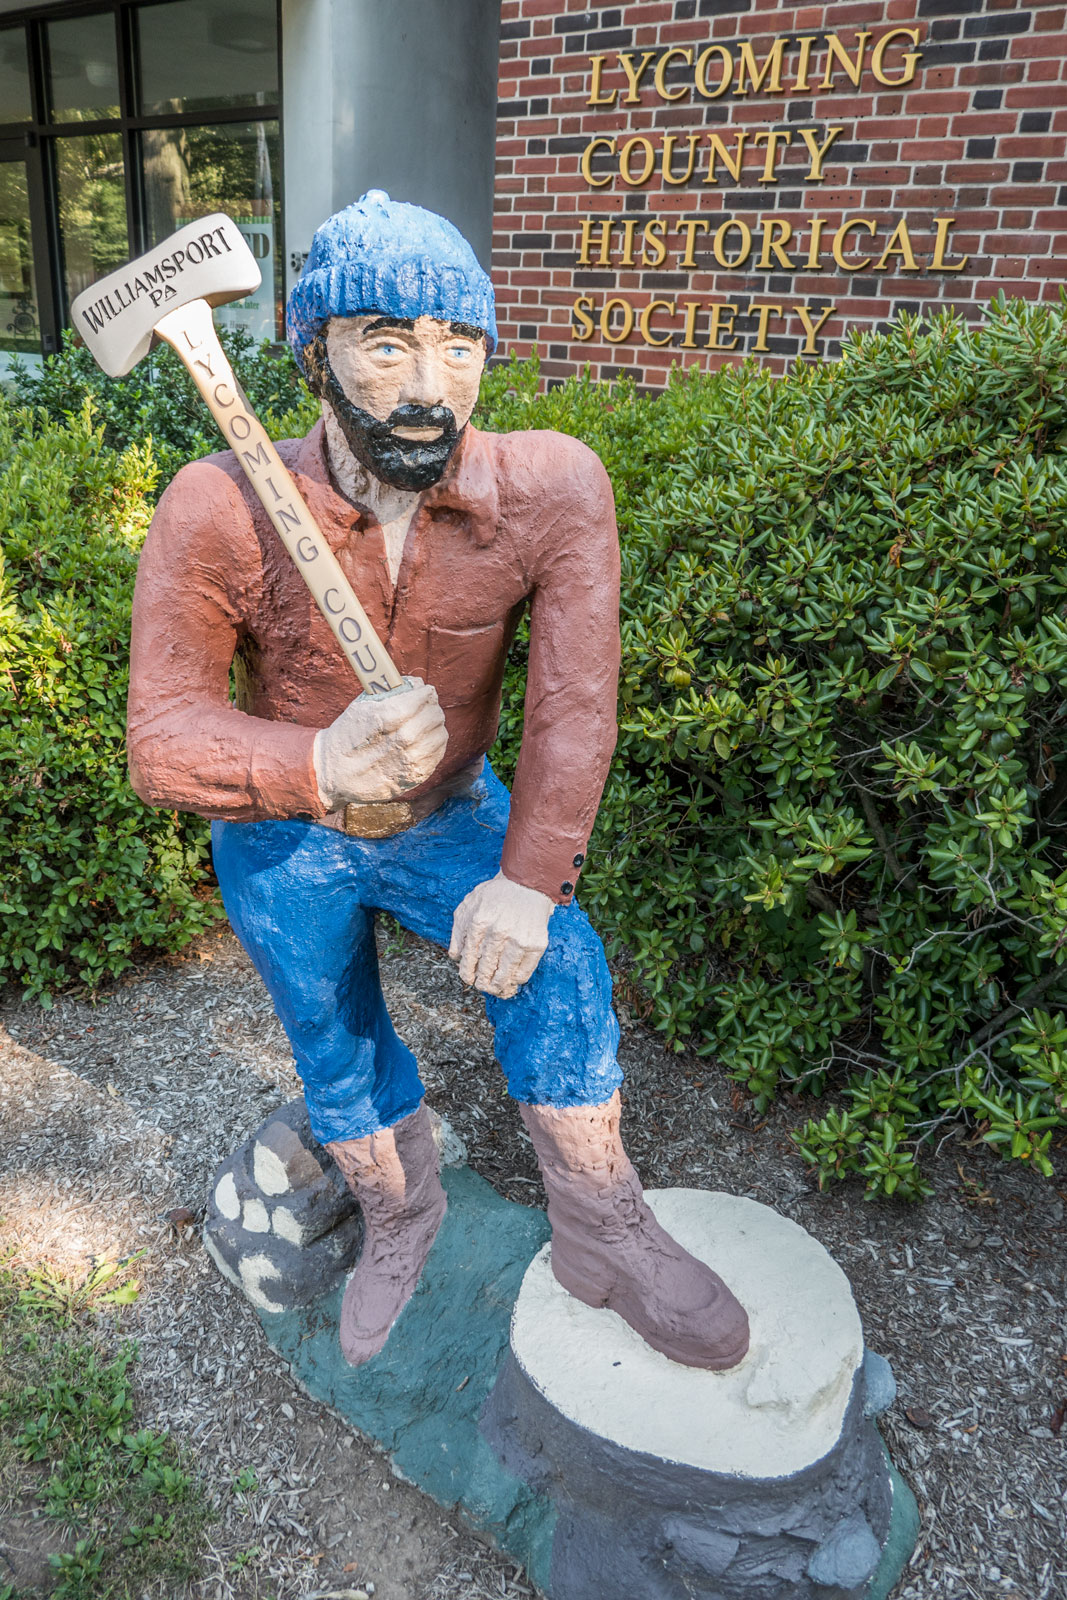 Lumberjack-Lycoming-County-Historical-Society-Williamsport-1067x1600